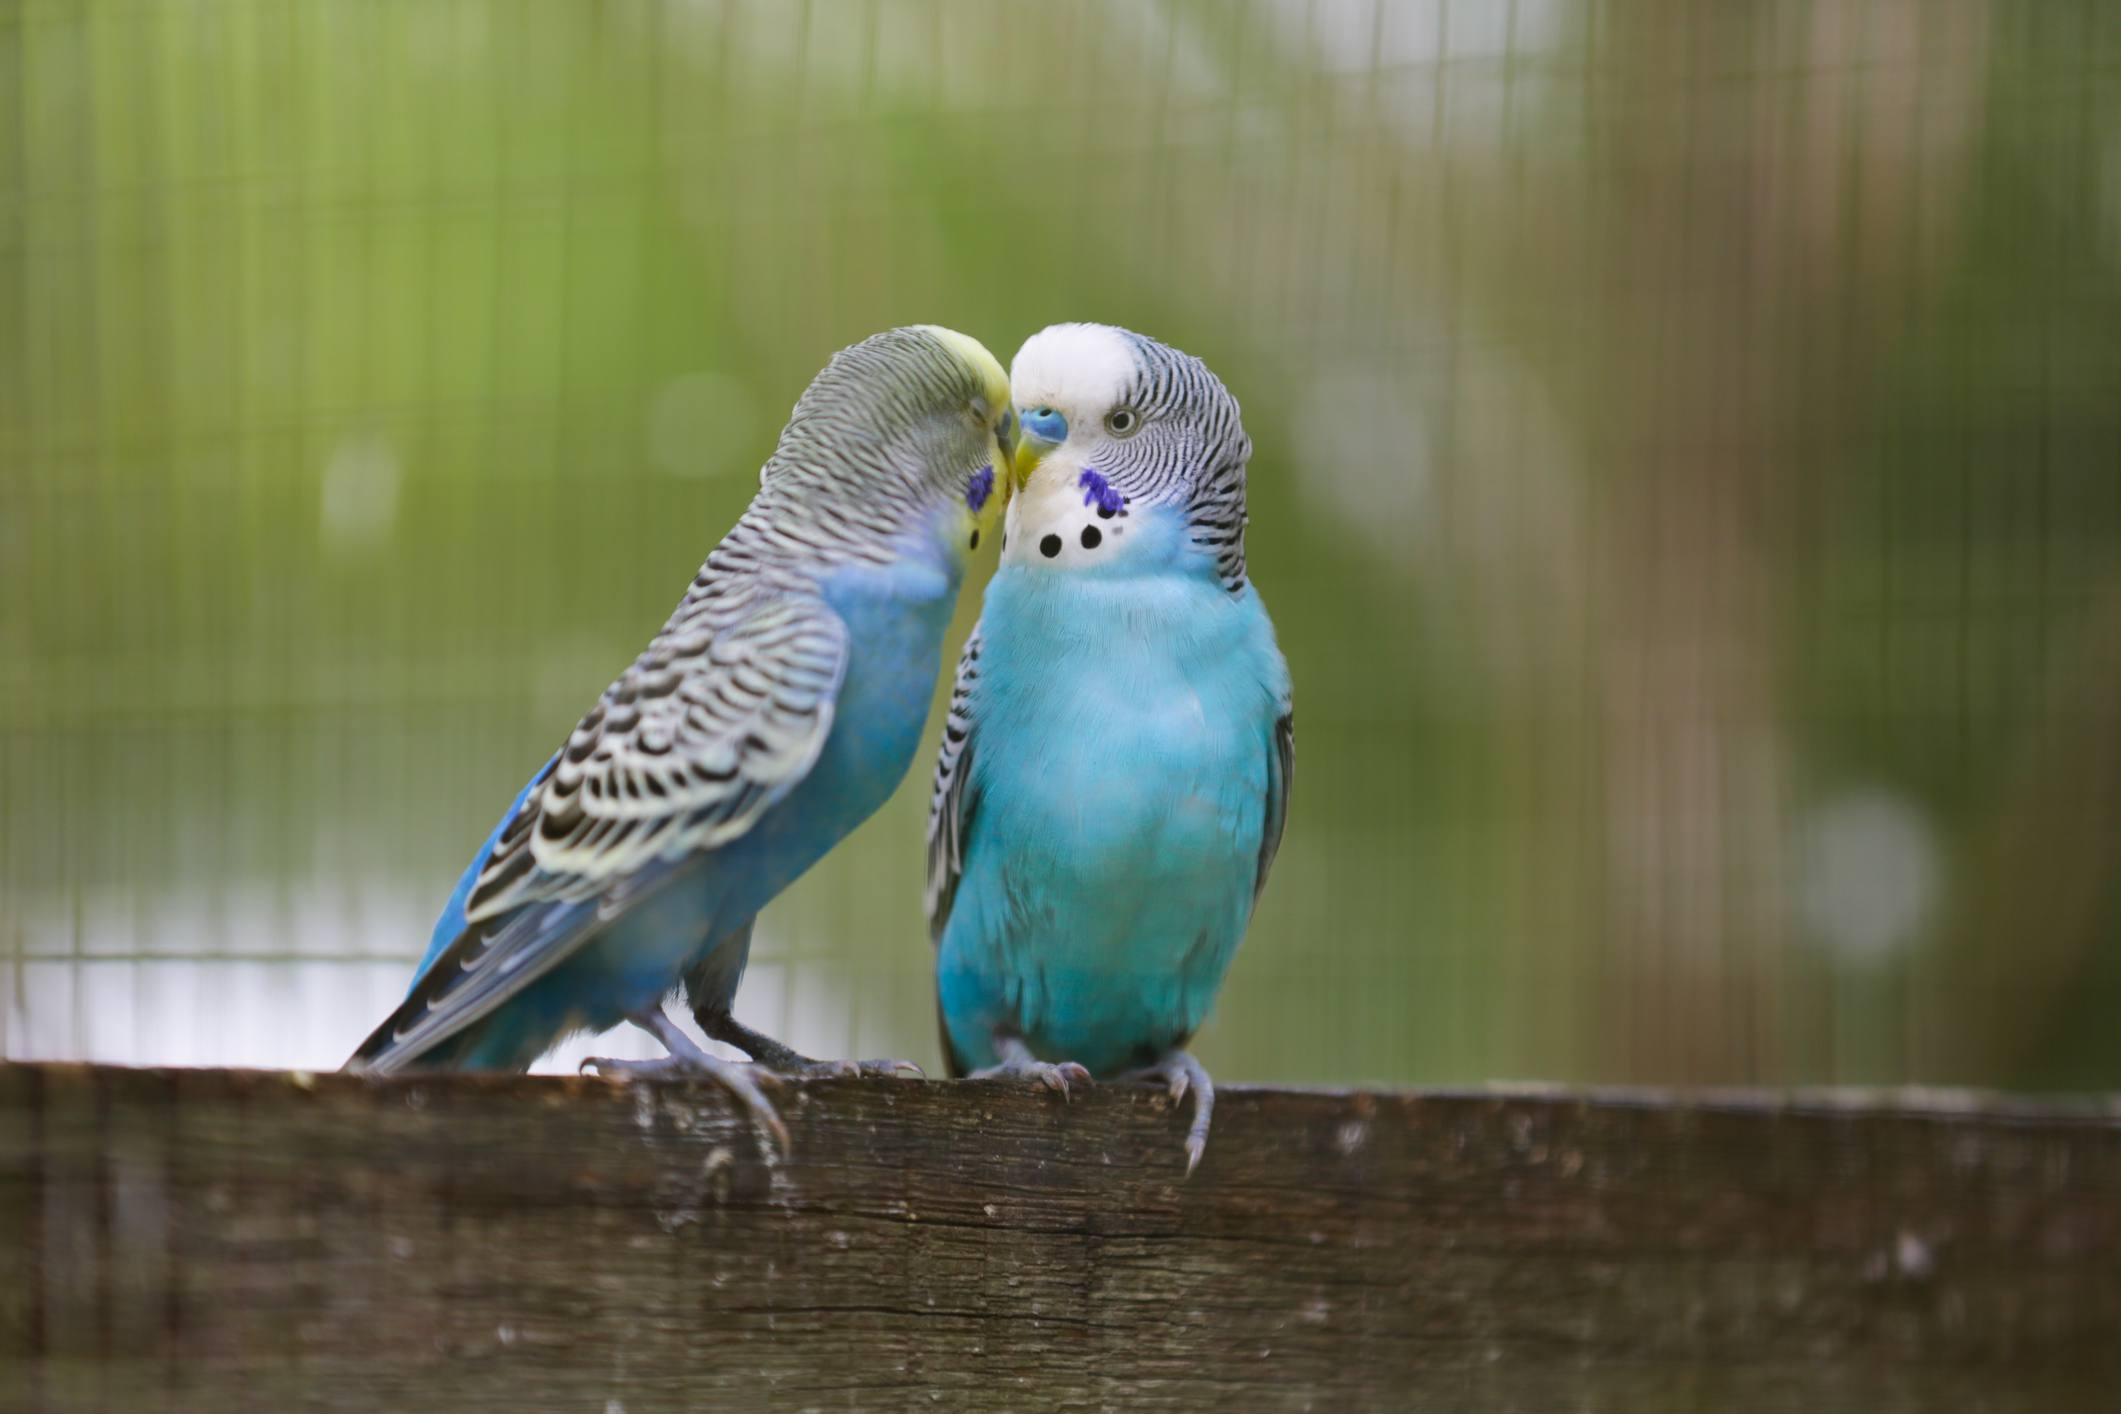 Two blue budgies on a piece of wood